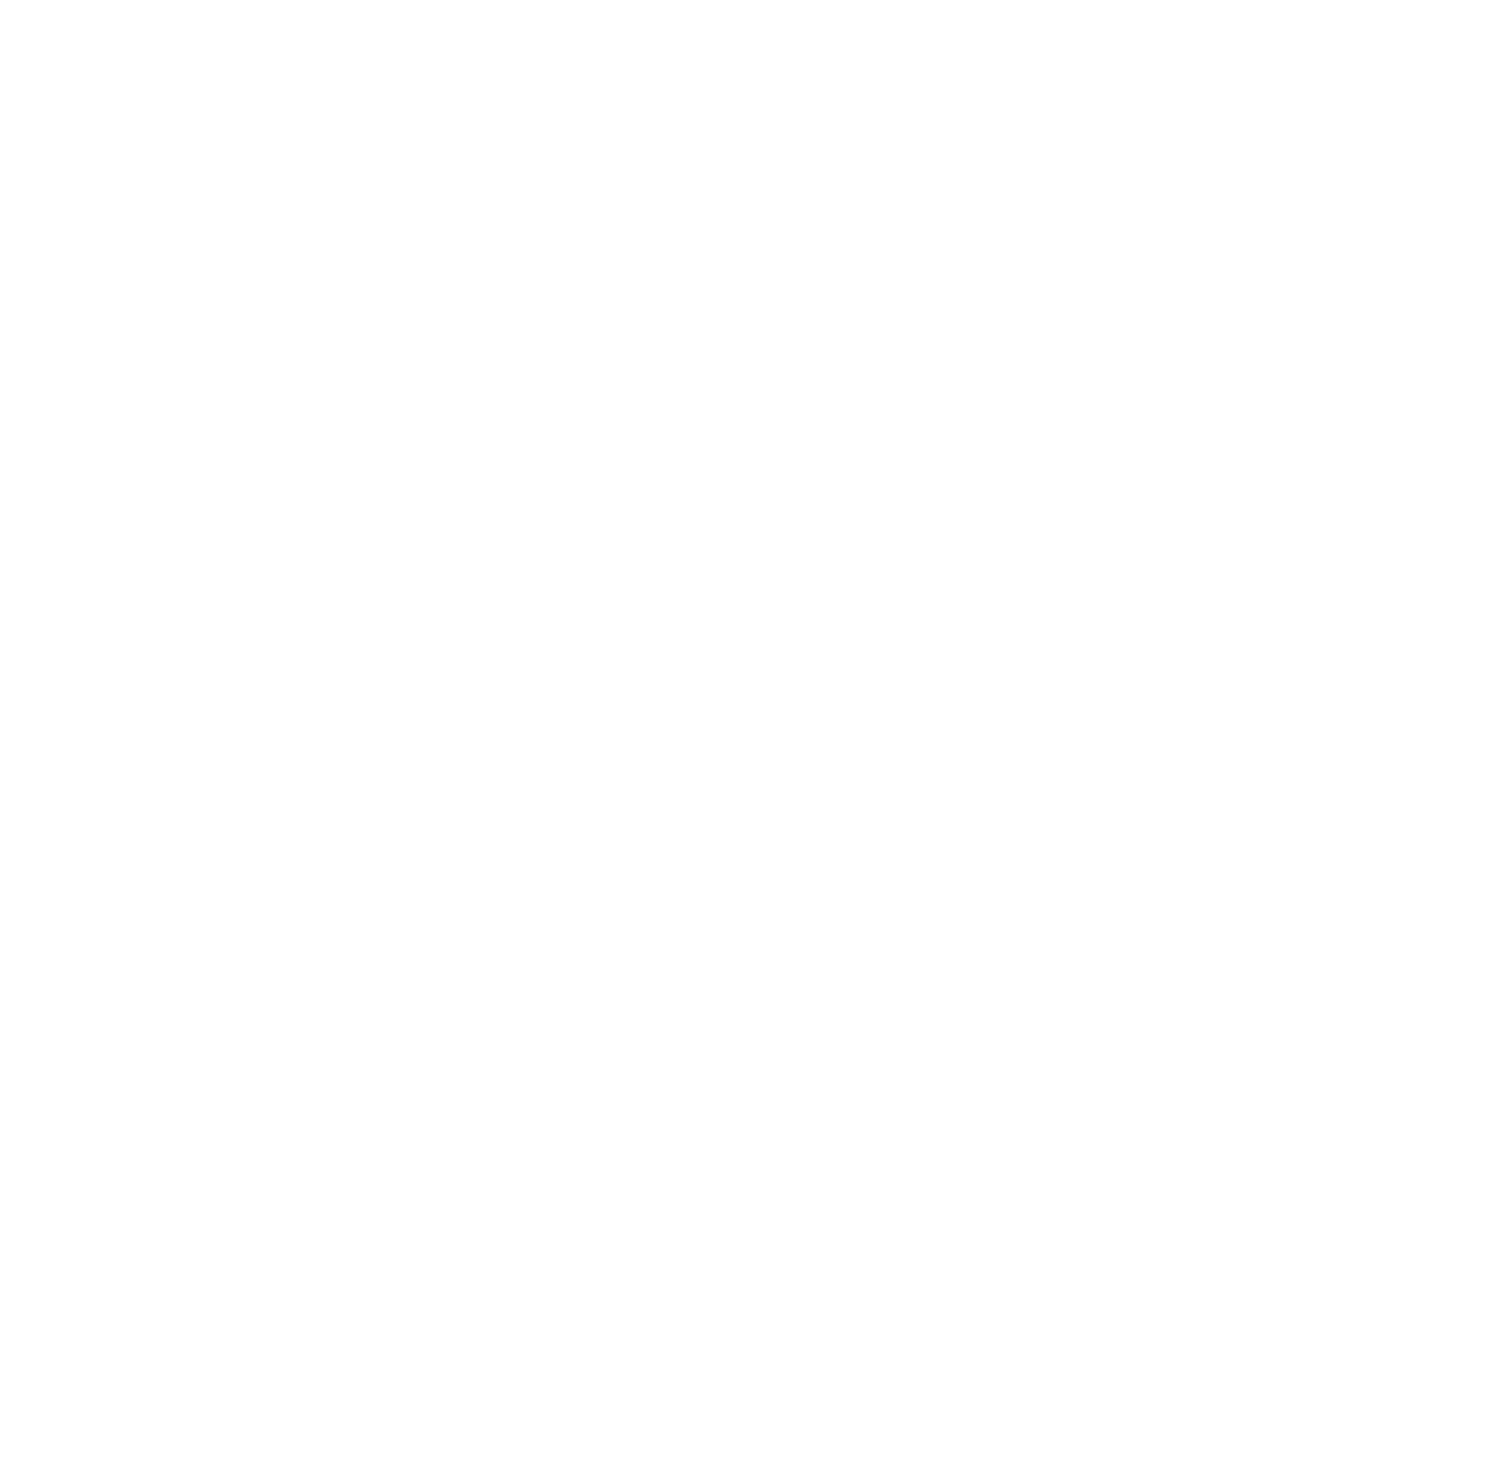 The Friend Zone Playbook